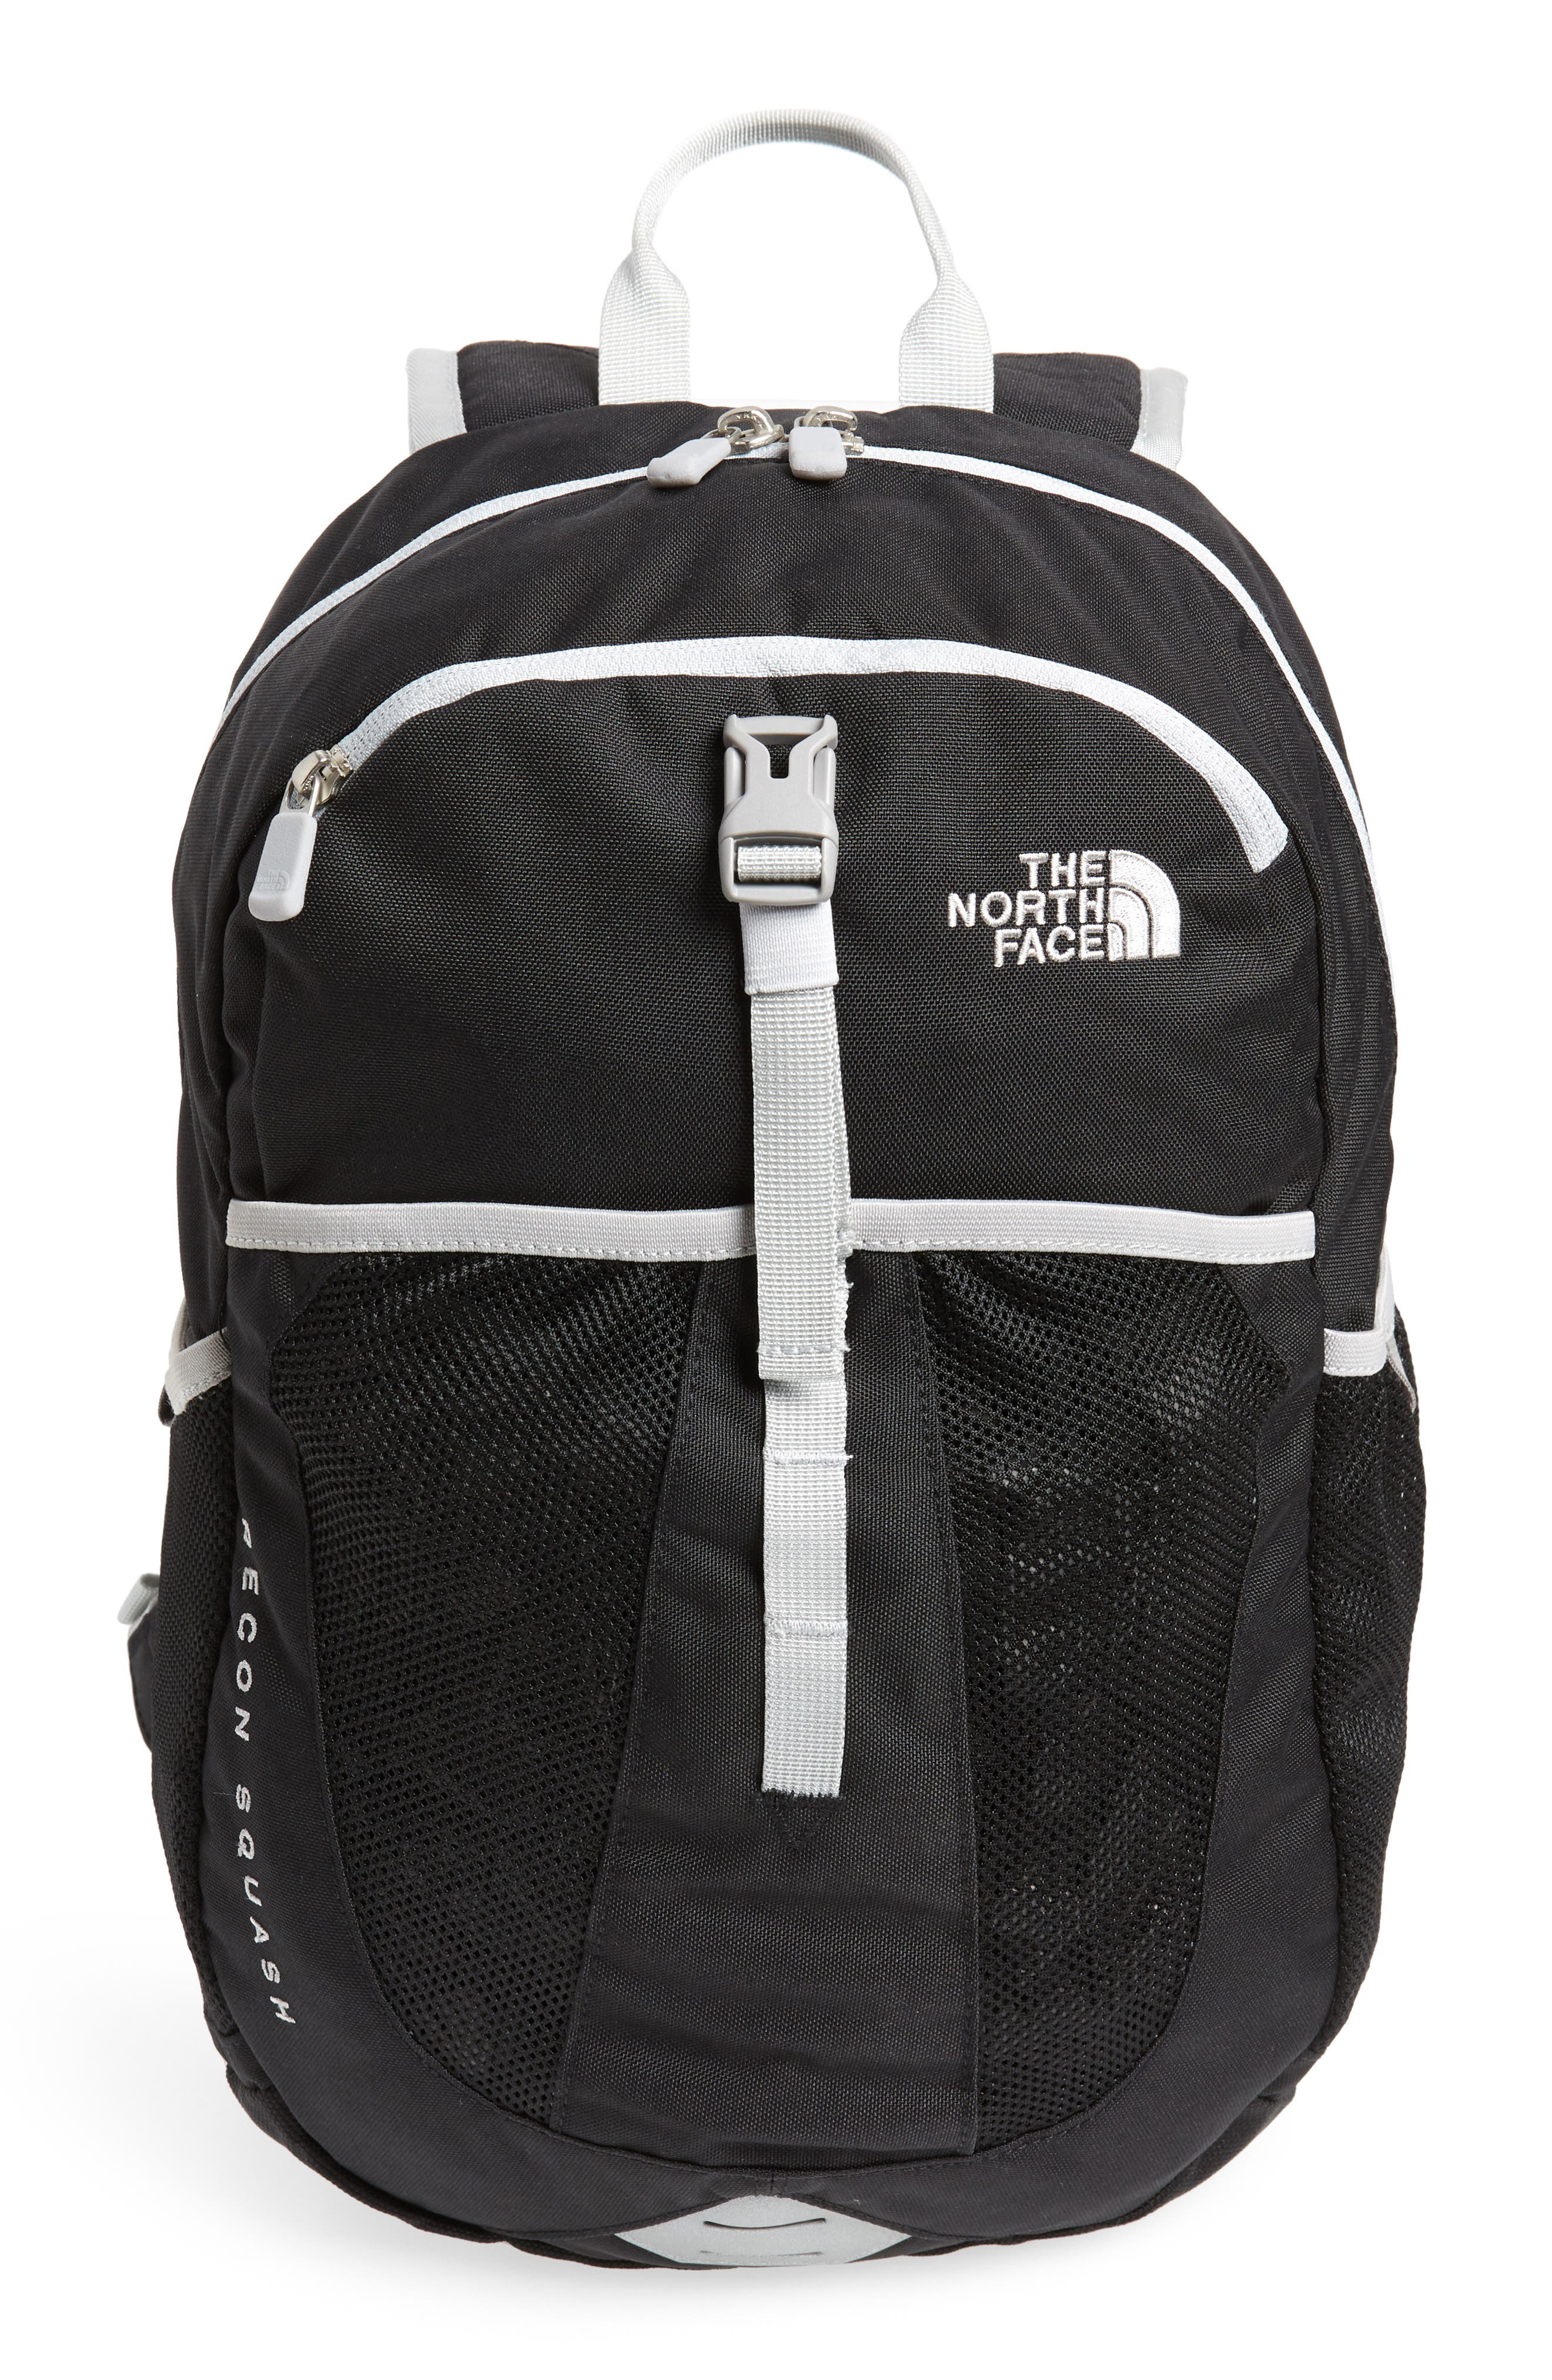 Recon Squash Backpack,                         Main,                         color, 001